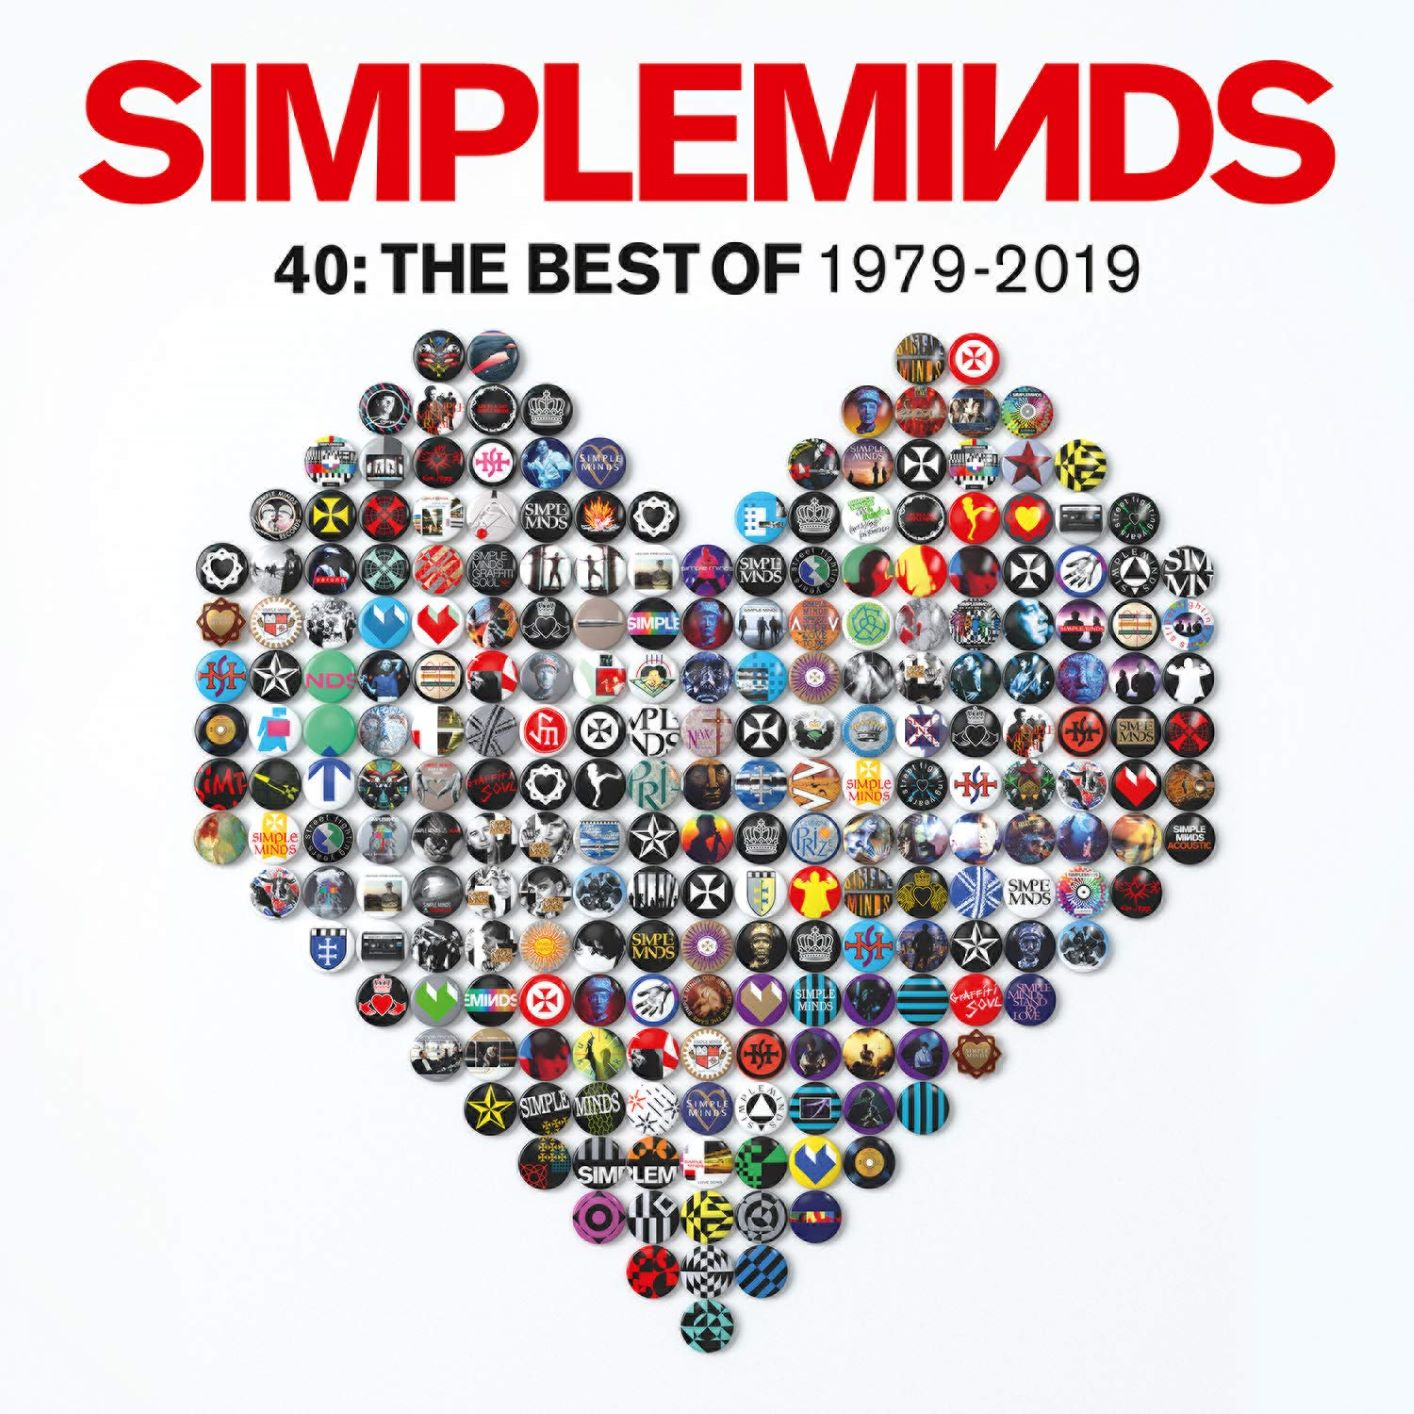 40: The best of 1979-2019